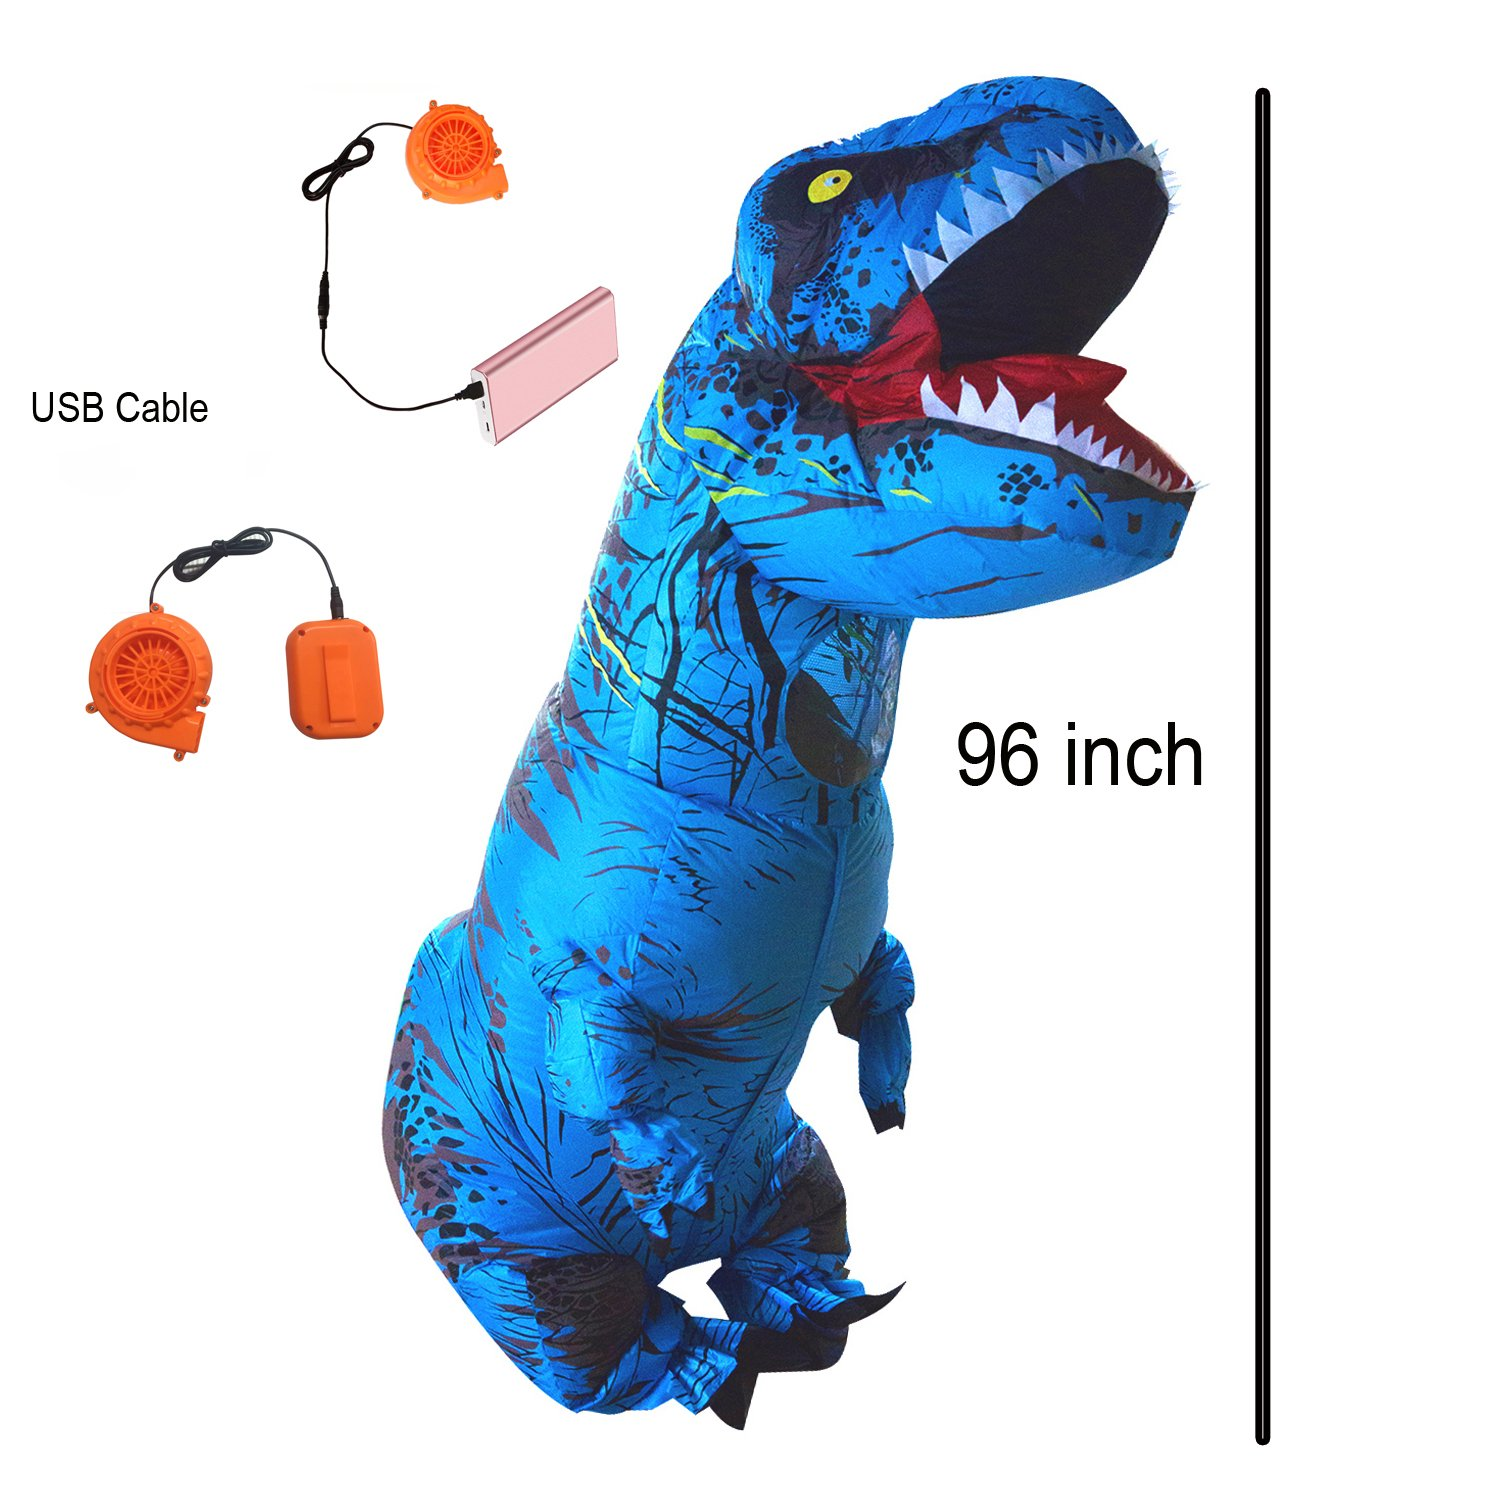 Halloween adulto inflable T Rex Dinosaur Partido traje Funny Dress Azul con mochila y cable USB